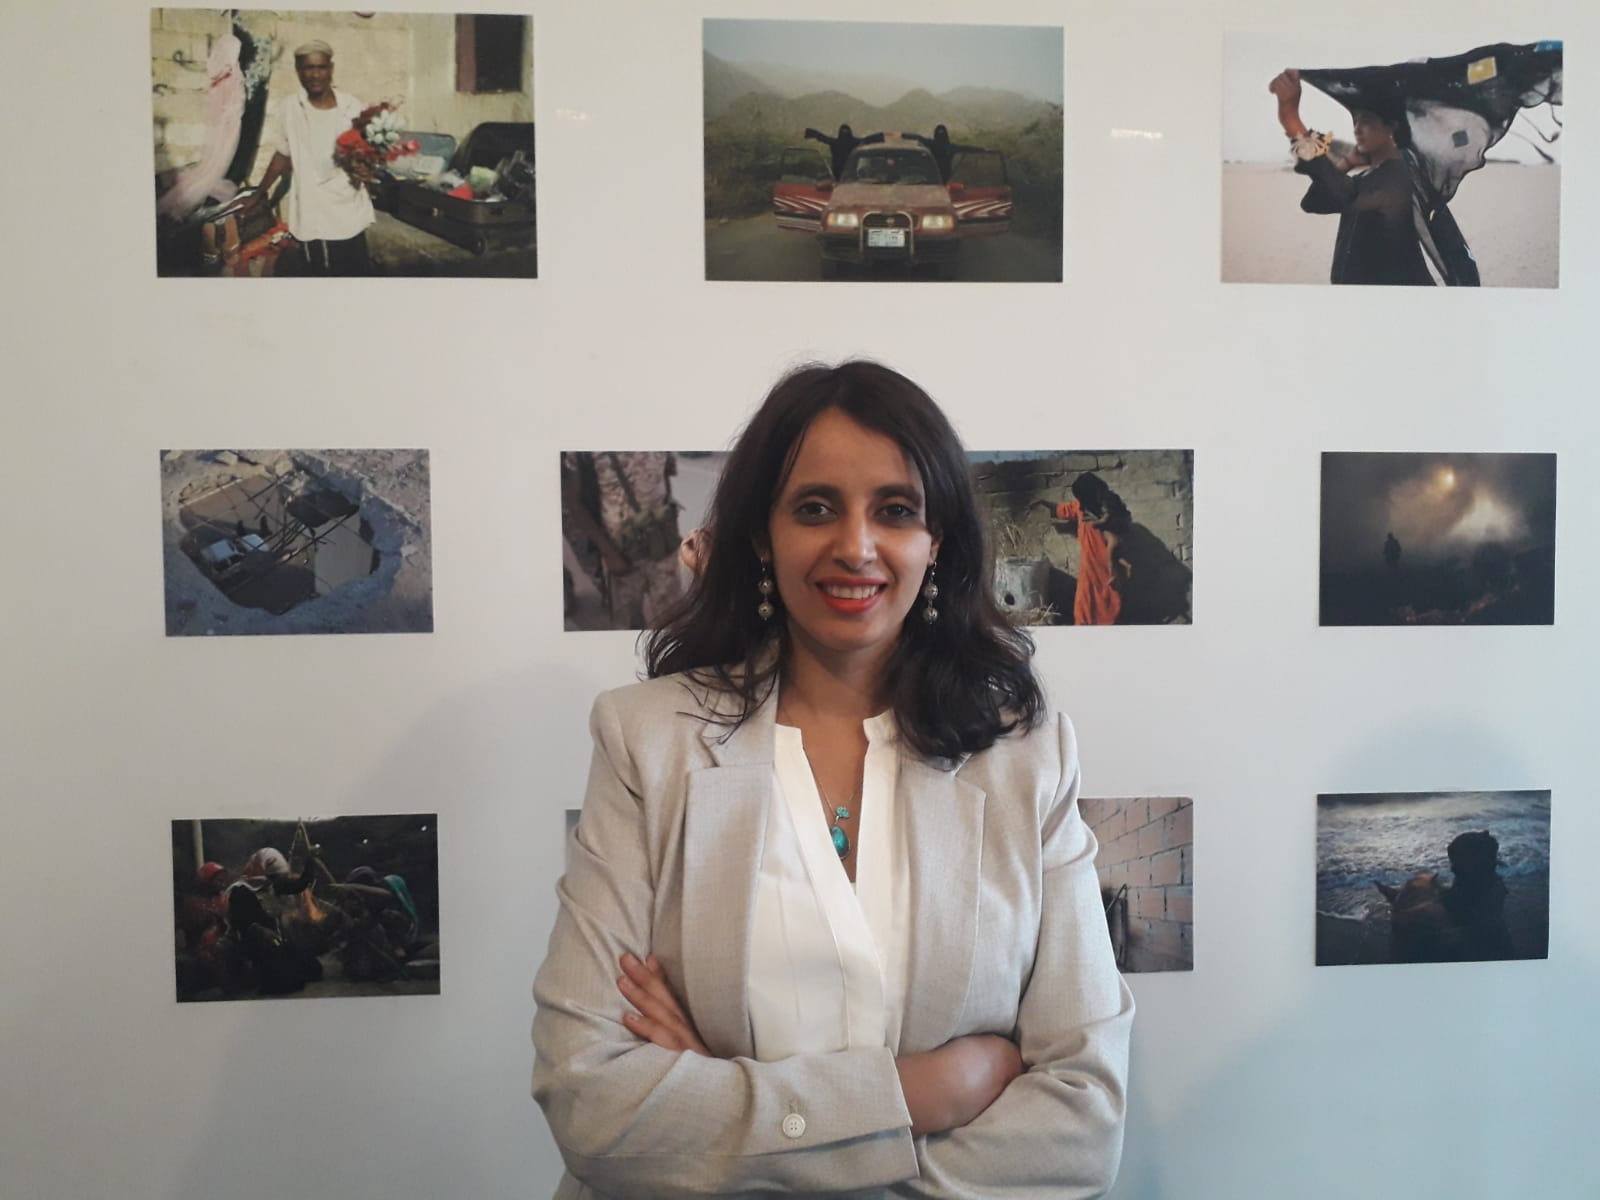 Amira Al-Sharif at her open studio in Paris, September 2019. Photo.